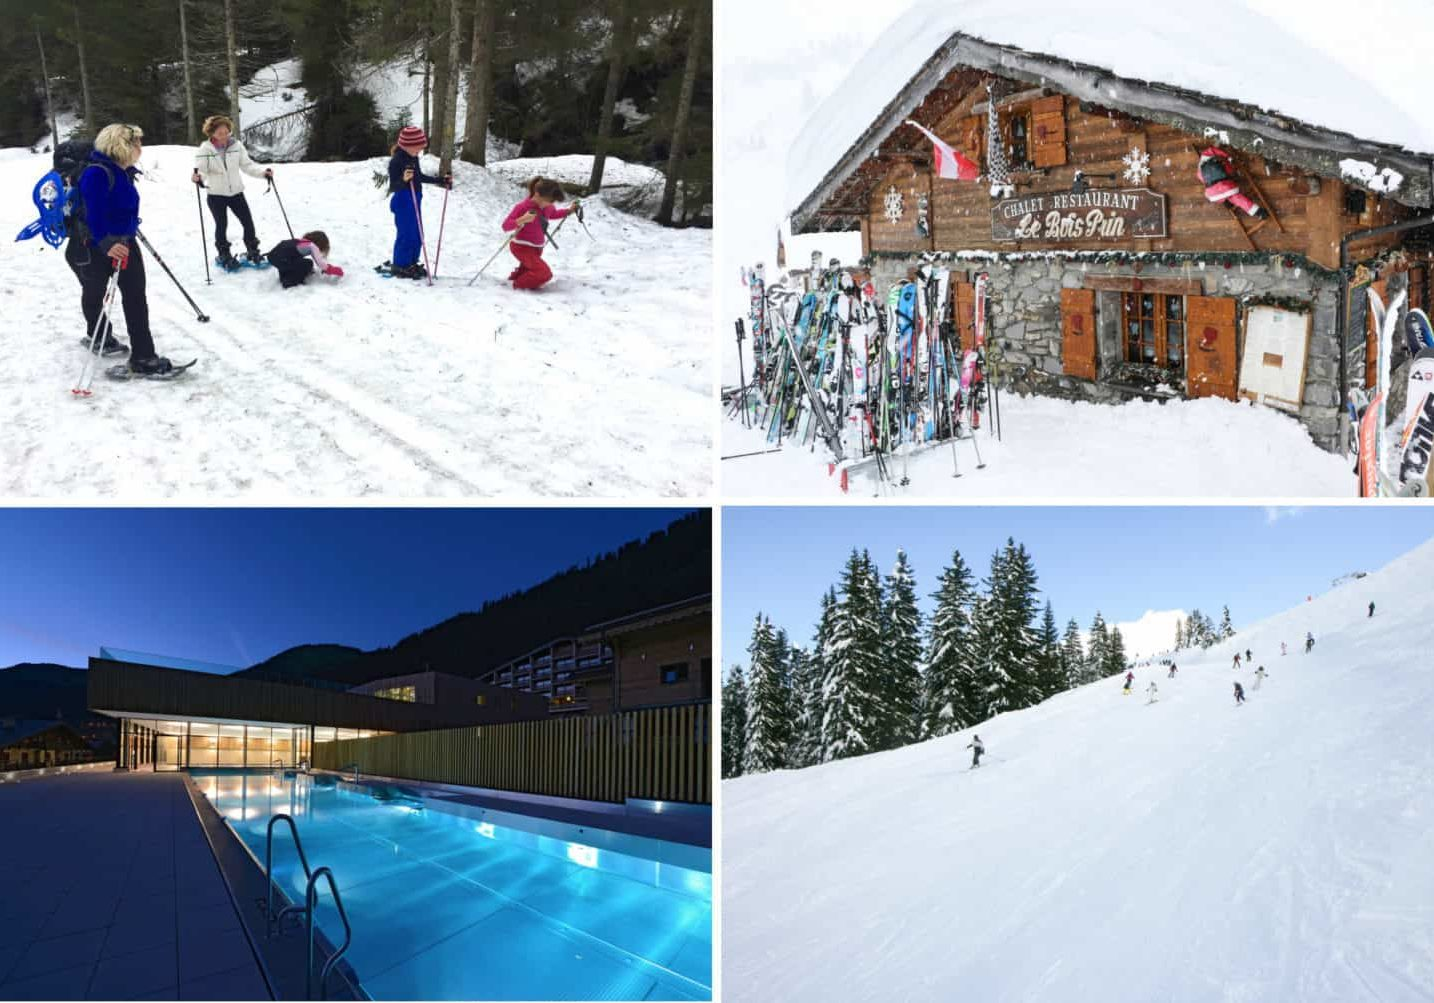 snow shoes, restaurant, swimming pool, ski slope, piste